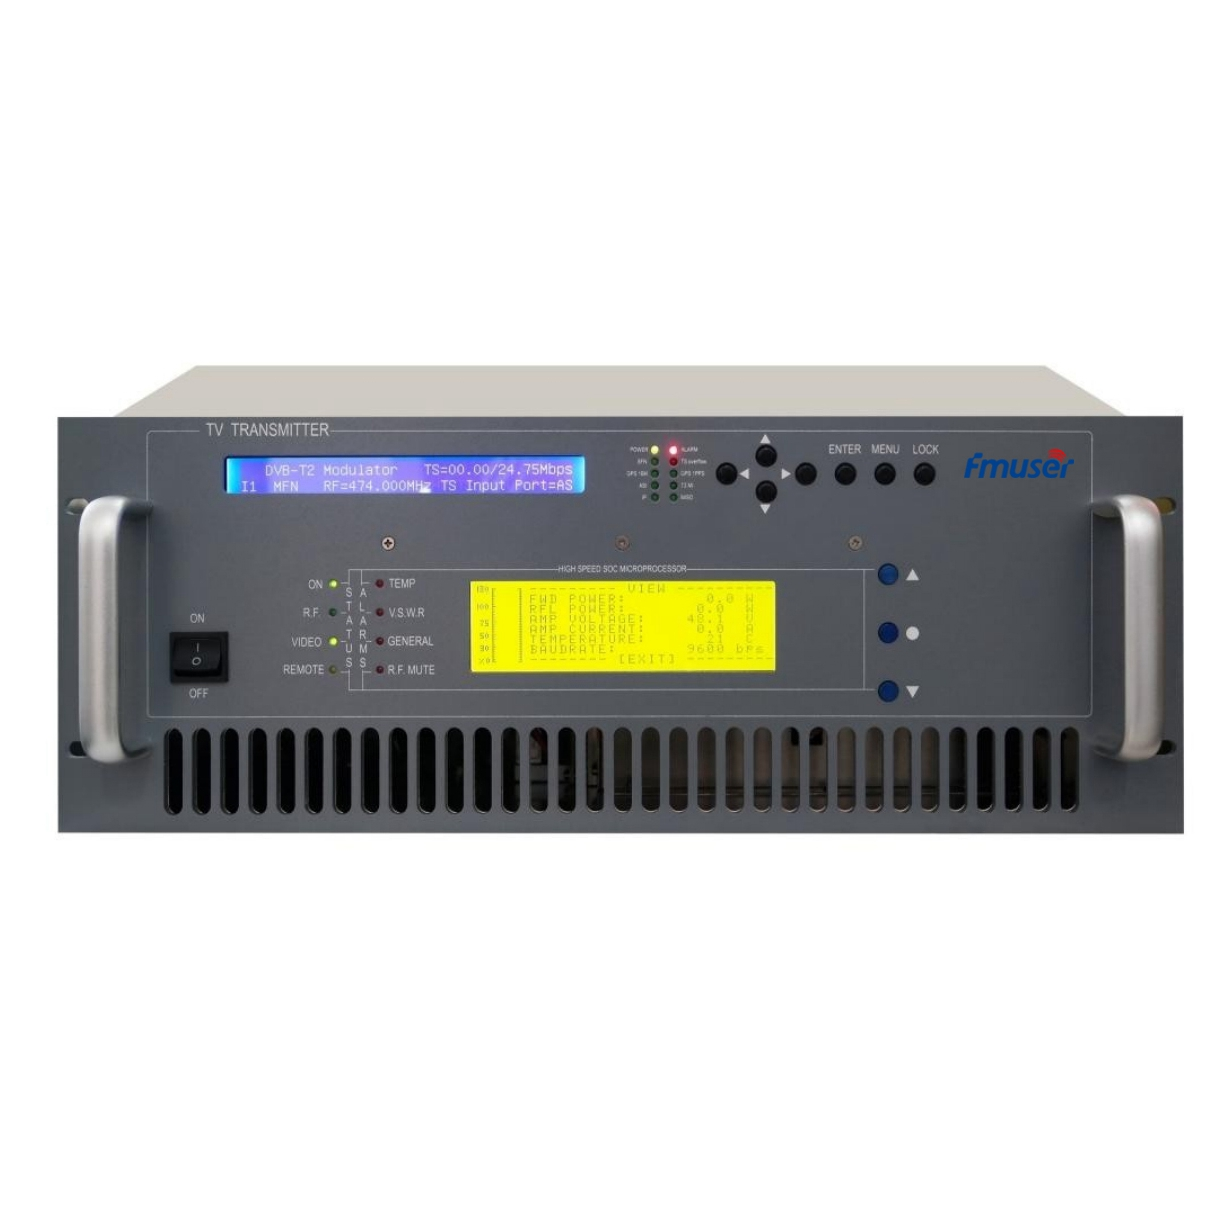 FMUSER FU518D-300W 300w DVB-T Digital TV Territorial Broadcast Transmitter (DVB-T/T2/ATSC/ISDB-T) For Professional TV Station